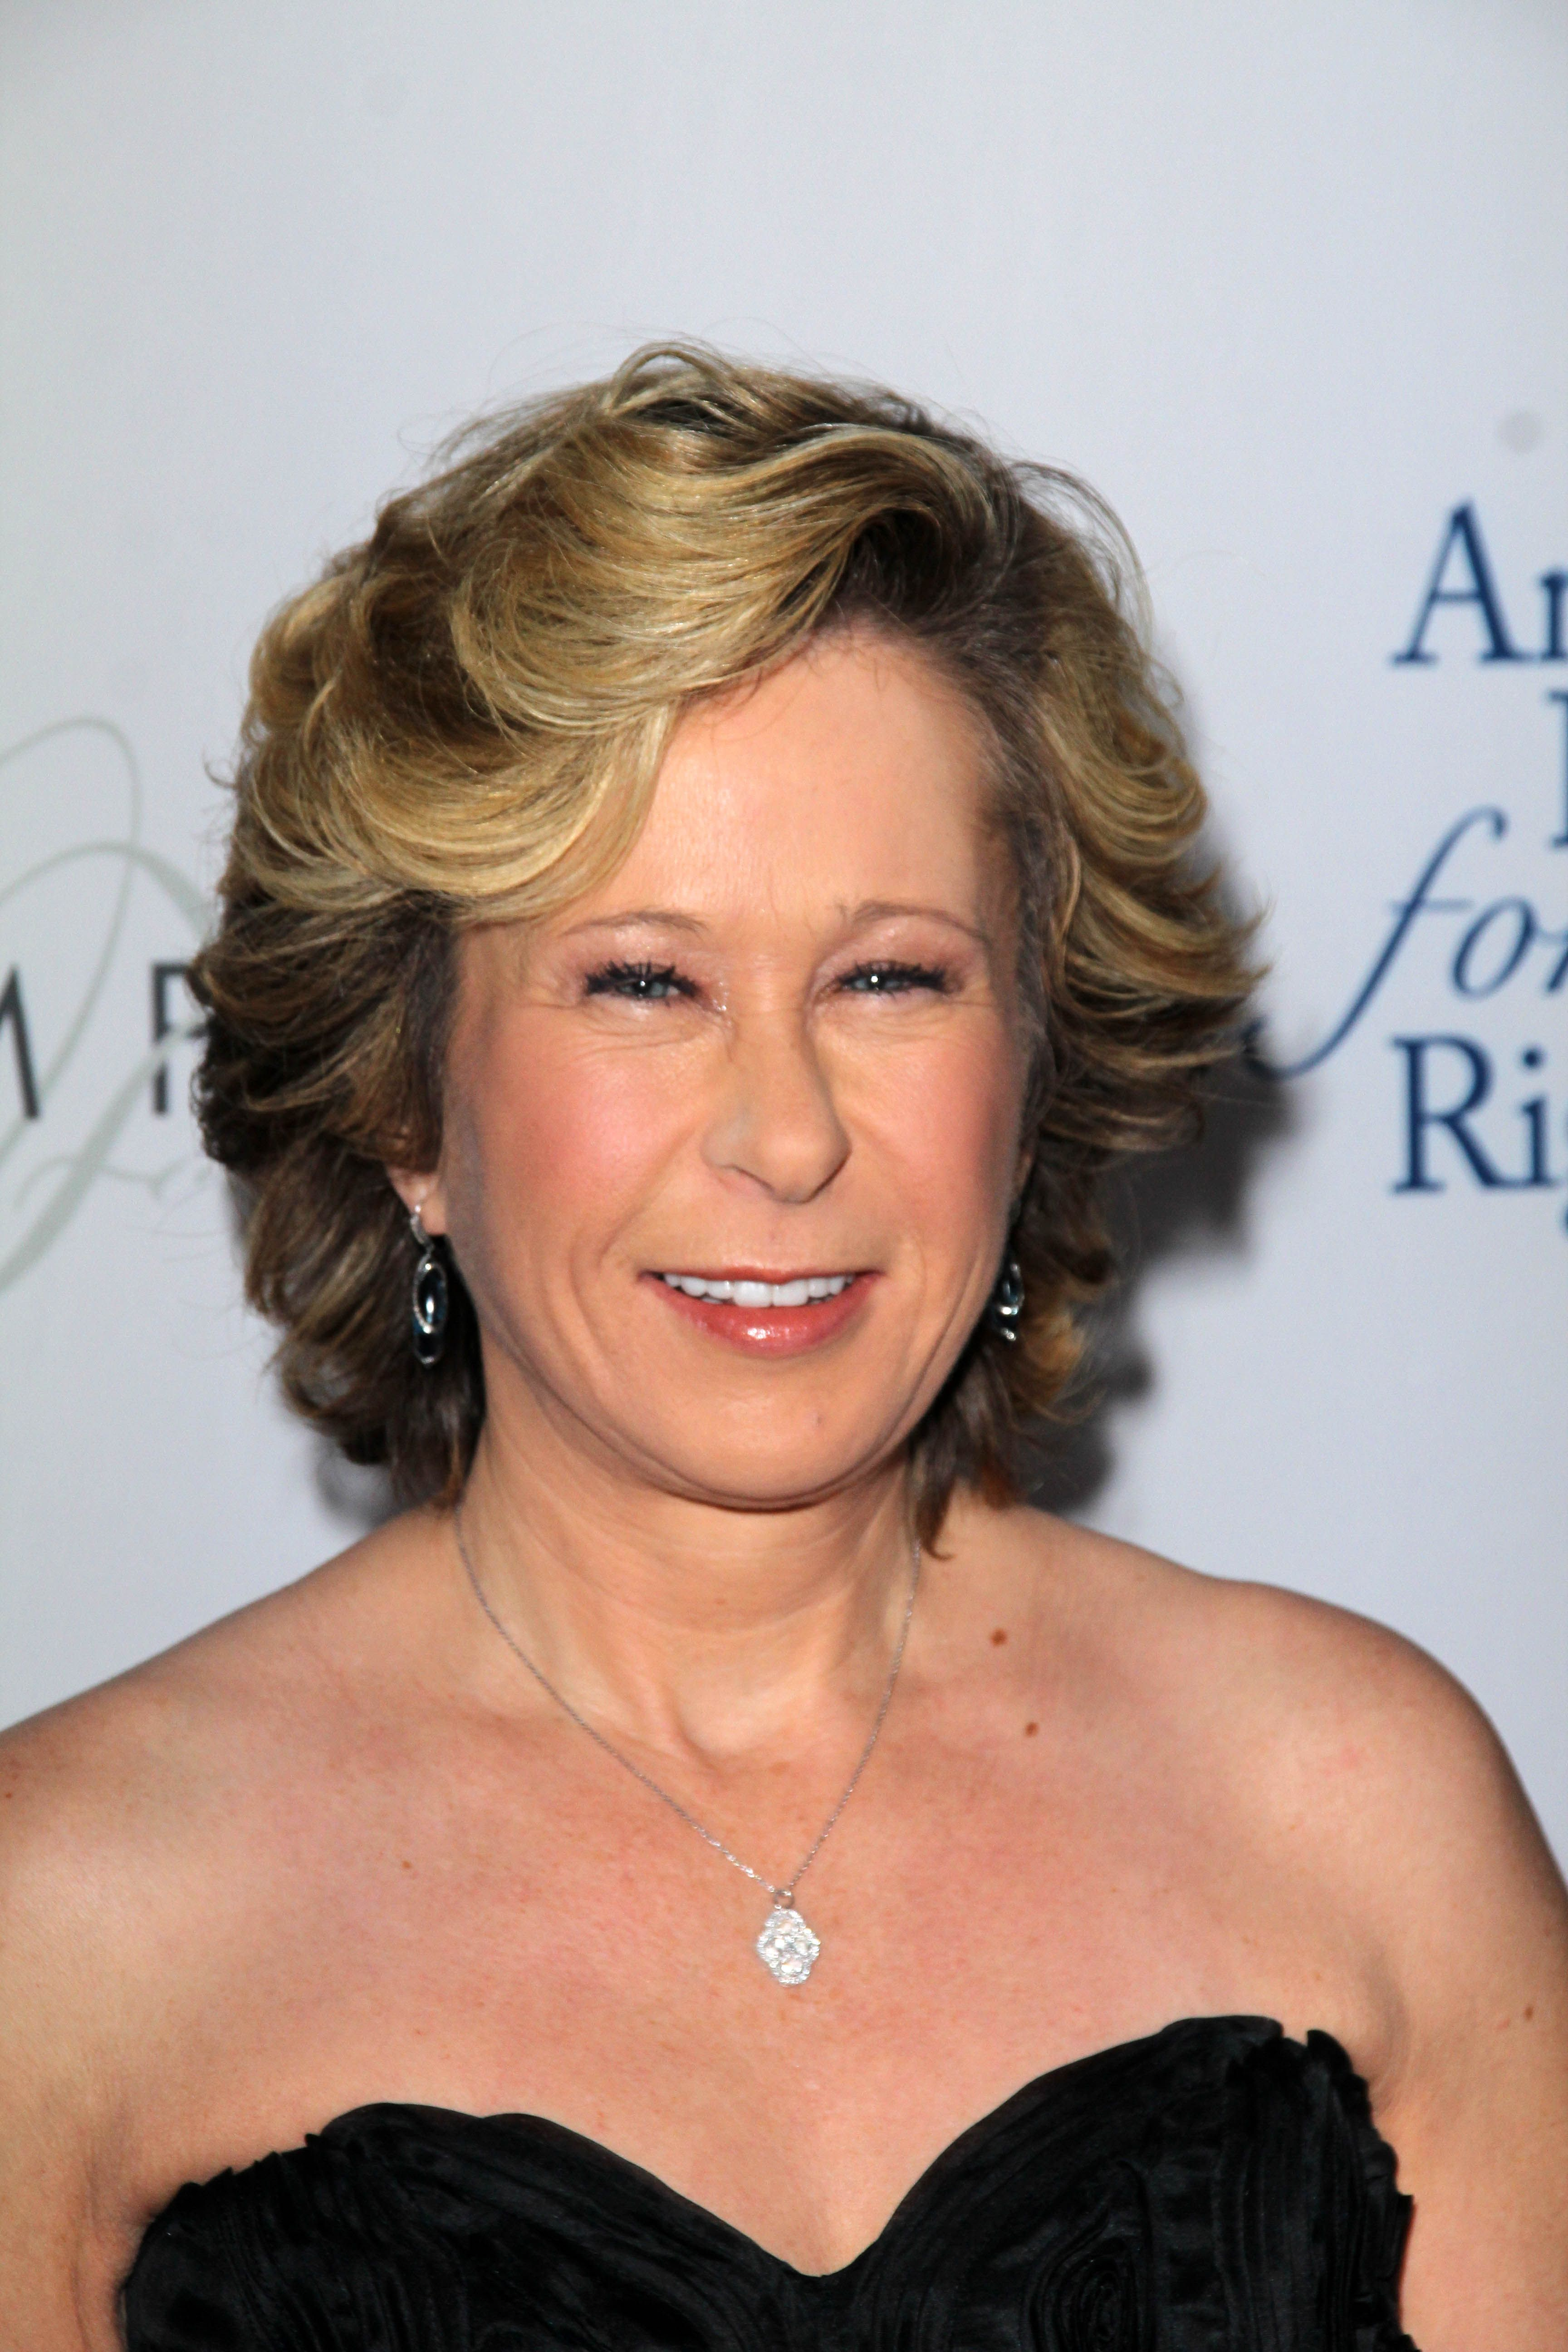 Yeardley Smith nude (81 photos), Pussy, Hot, Selfie, cleavage 2019